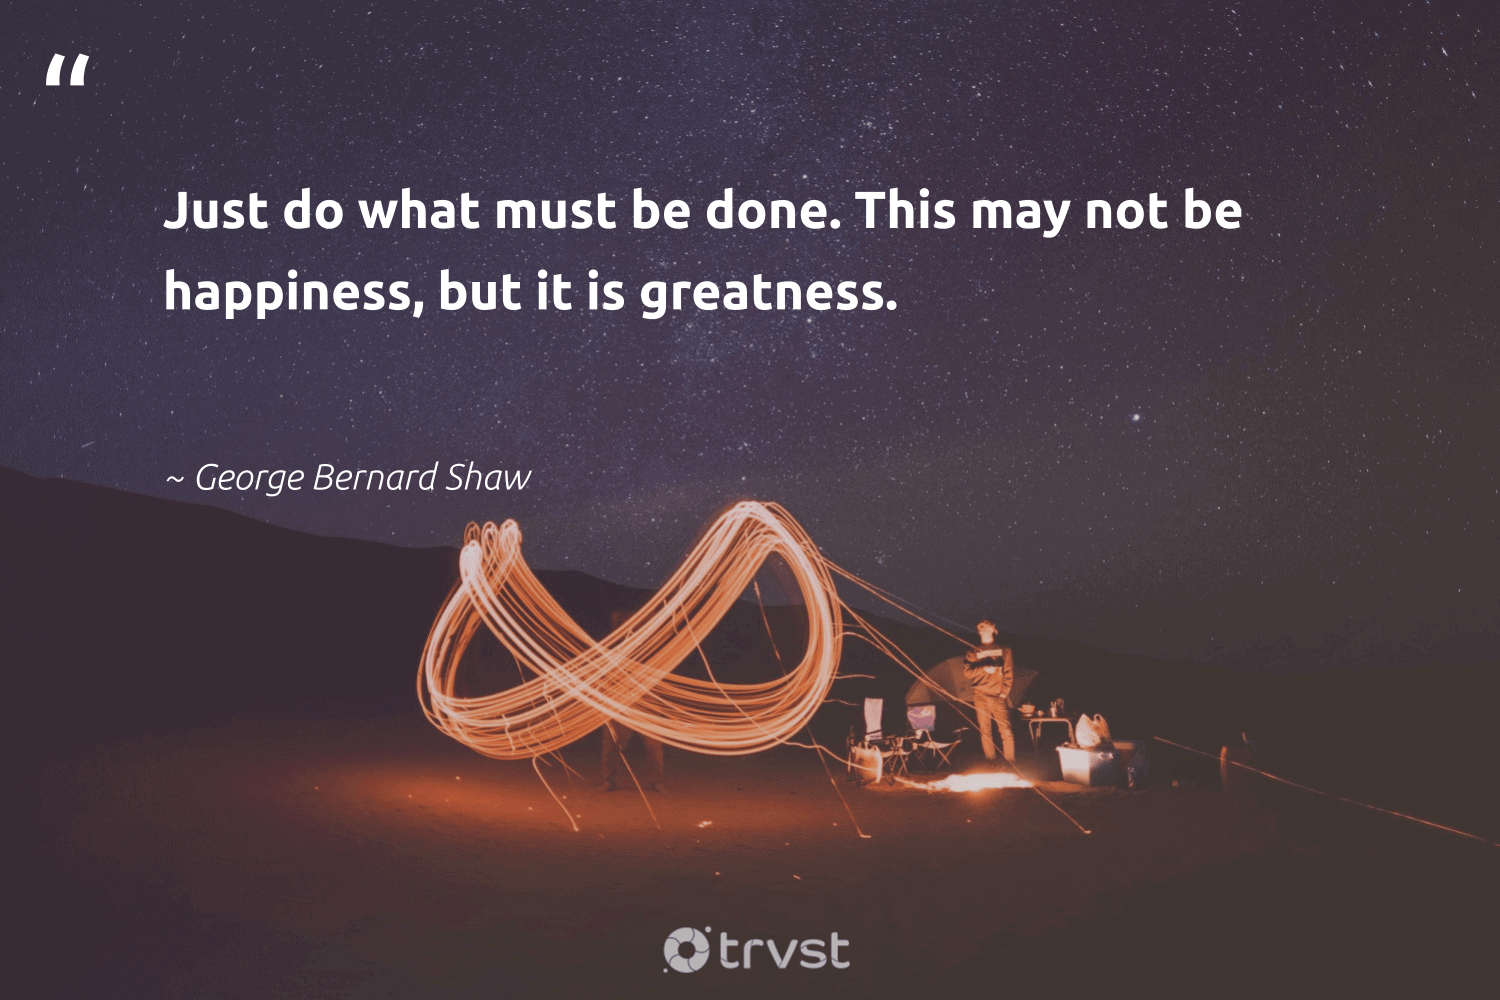 """""""Just do what must be done. This may not be happiness, but it is greatness.""""  - George Bernard Shaw #trvst #quotes #happiness #togetherwecan #bethechange #begreat #beinspired #changemakers #ecoconscious #health #impact #nevergiveup"""